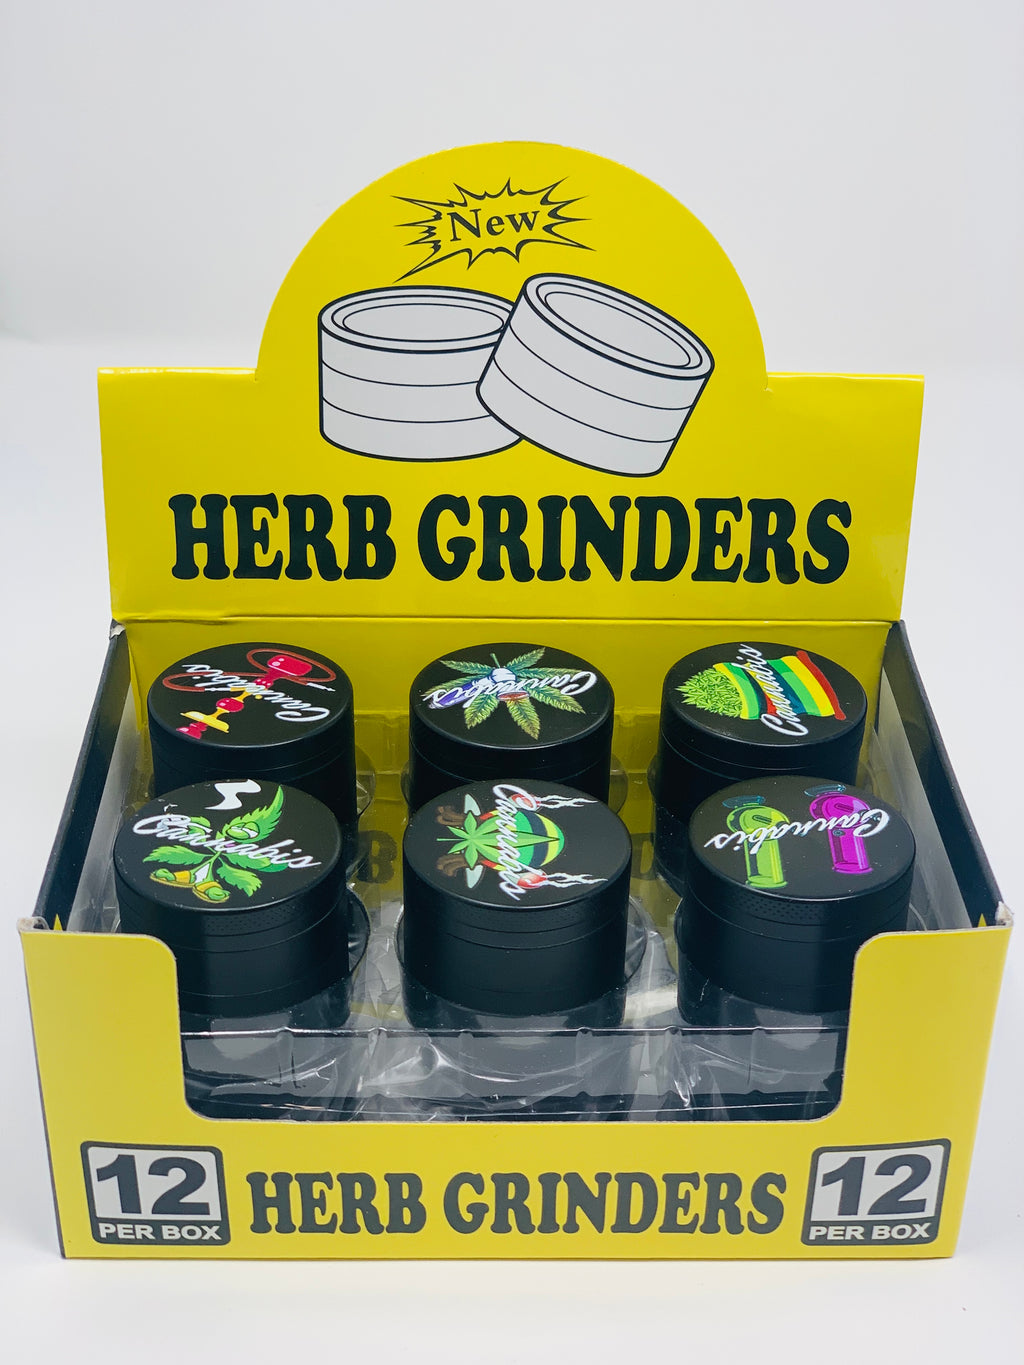 HERB GRINDERS 42MM 12 COUNT PER BOX